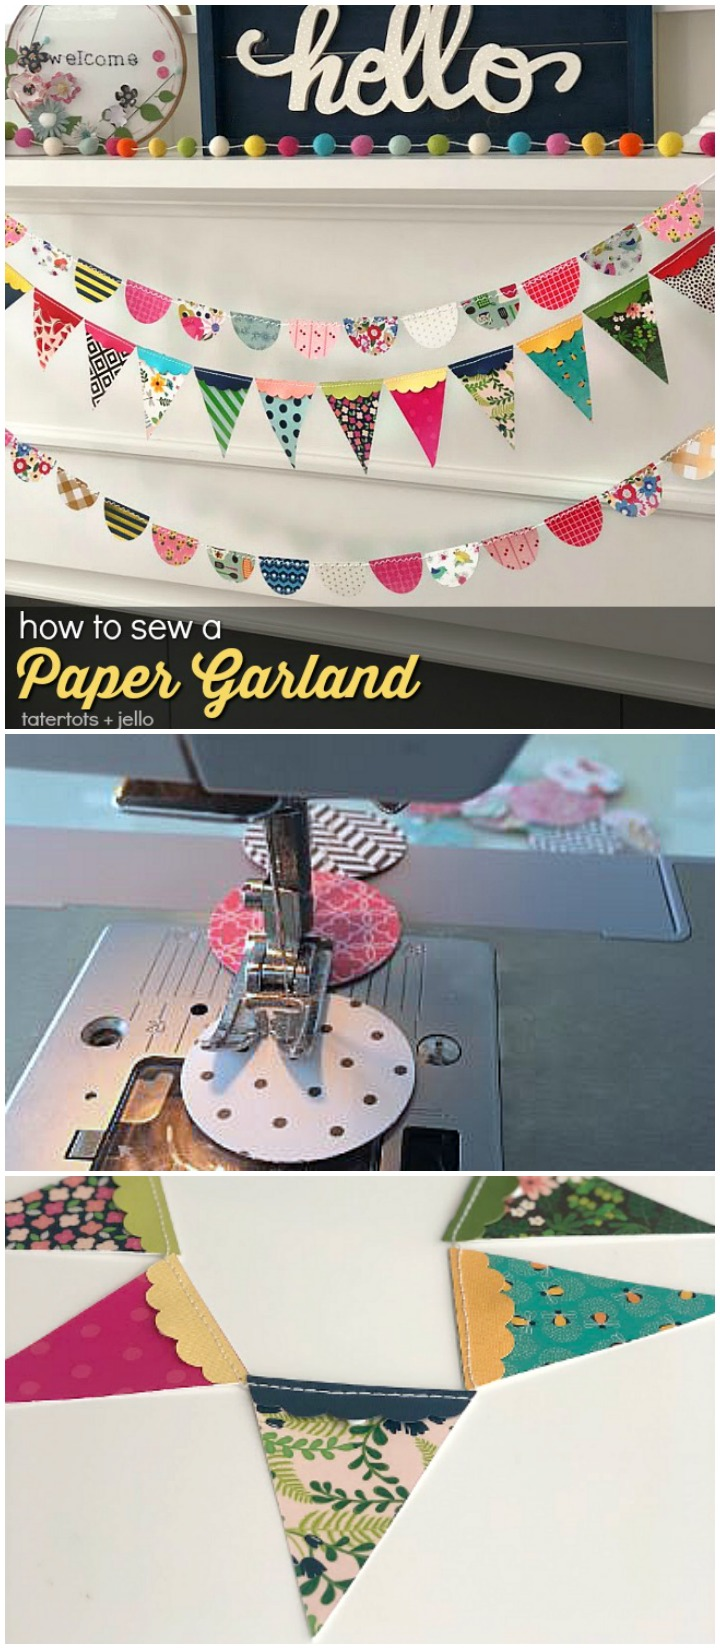 How to sew a paper garland. It's an easy way to decorate for ANY occasion. In just minutes you can have the perfect compliment to your decor or occasion!